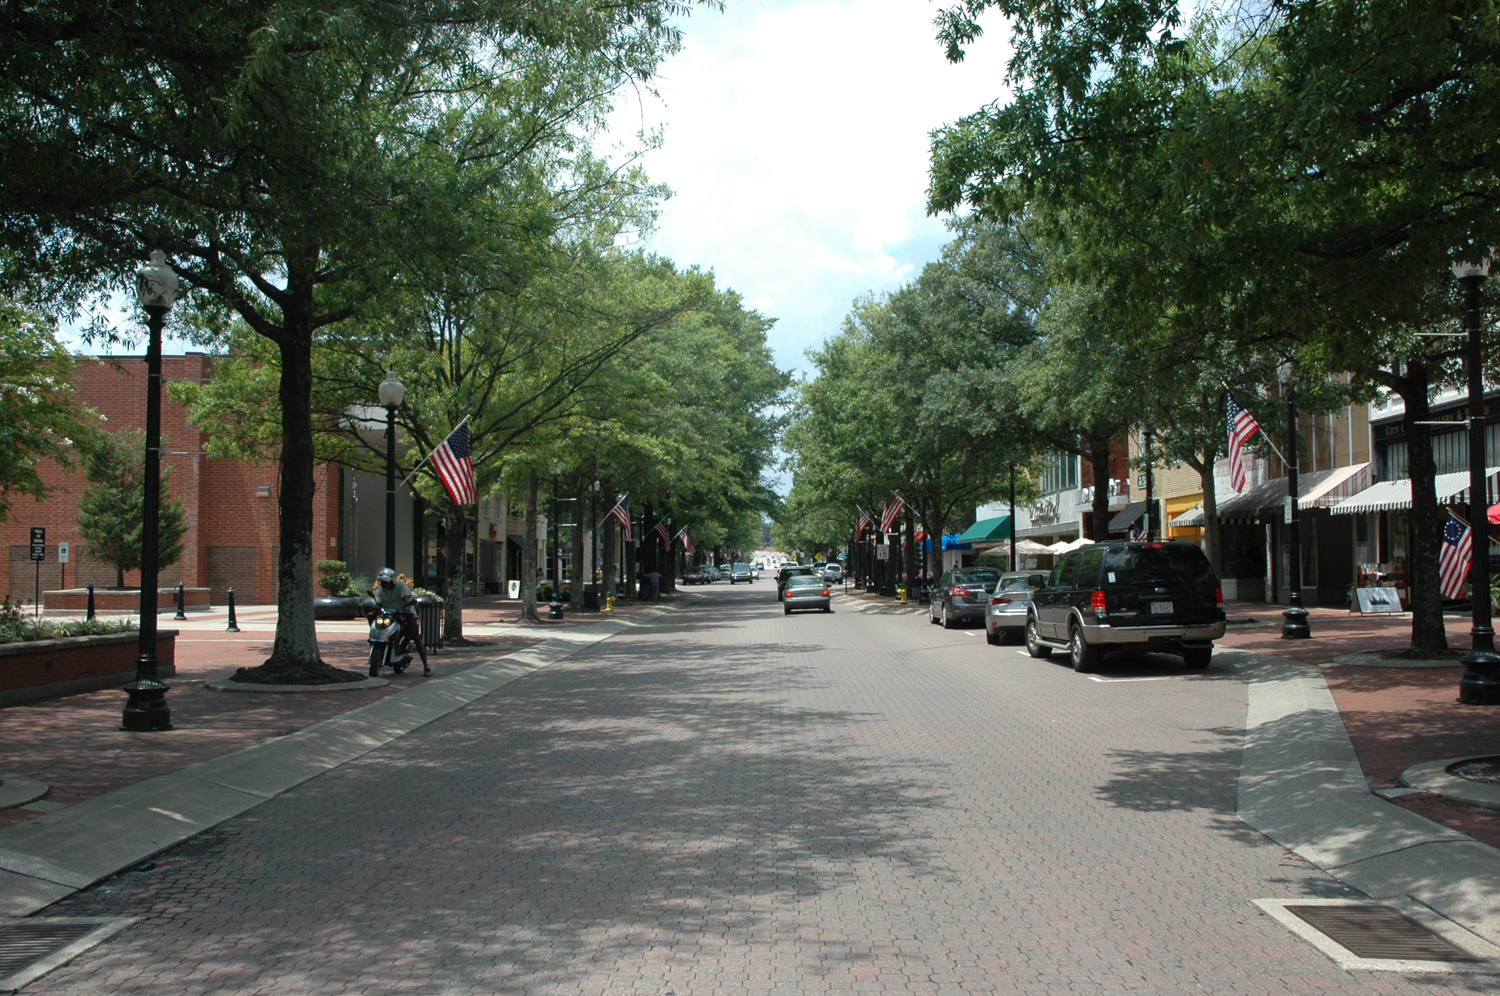 It took shop owners on the north (right) side of Hay Street in Fayetteville, North Carolina years to convince Time Warner Cable to provide them with Internet service, even though the south side of the street was wired.